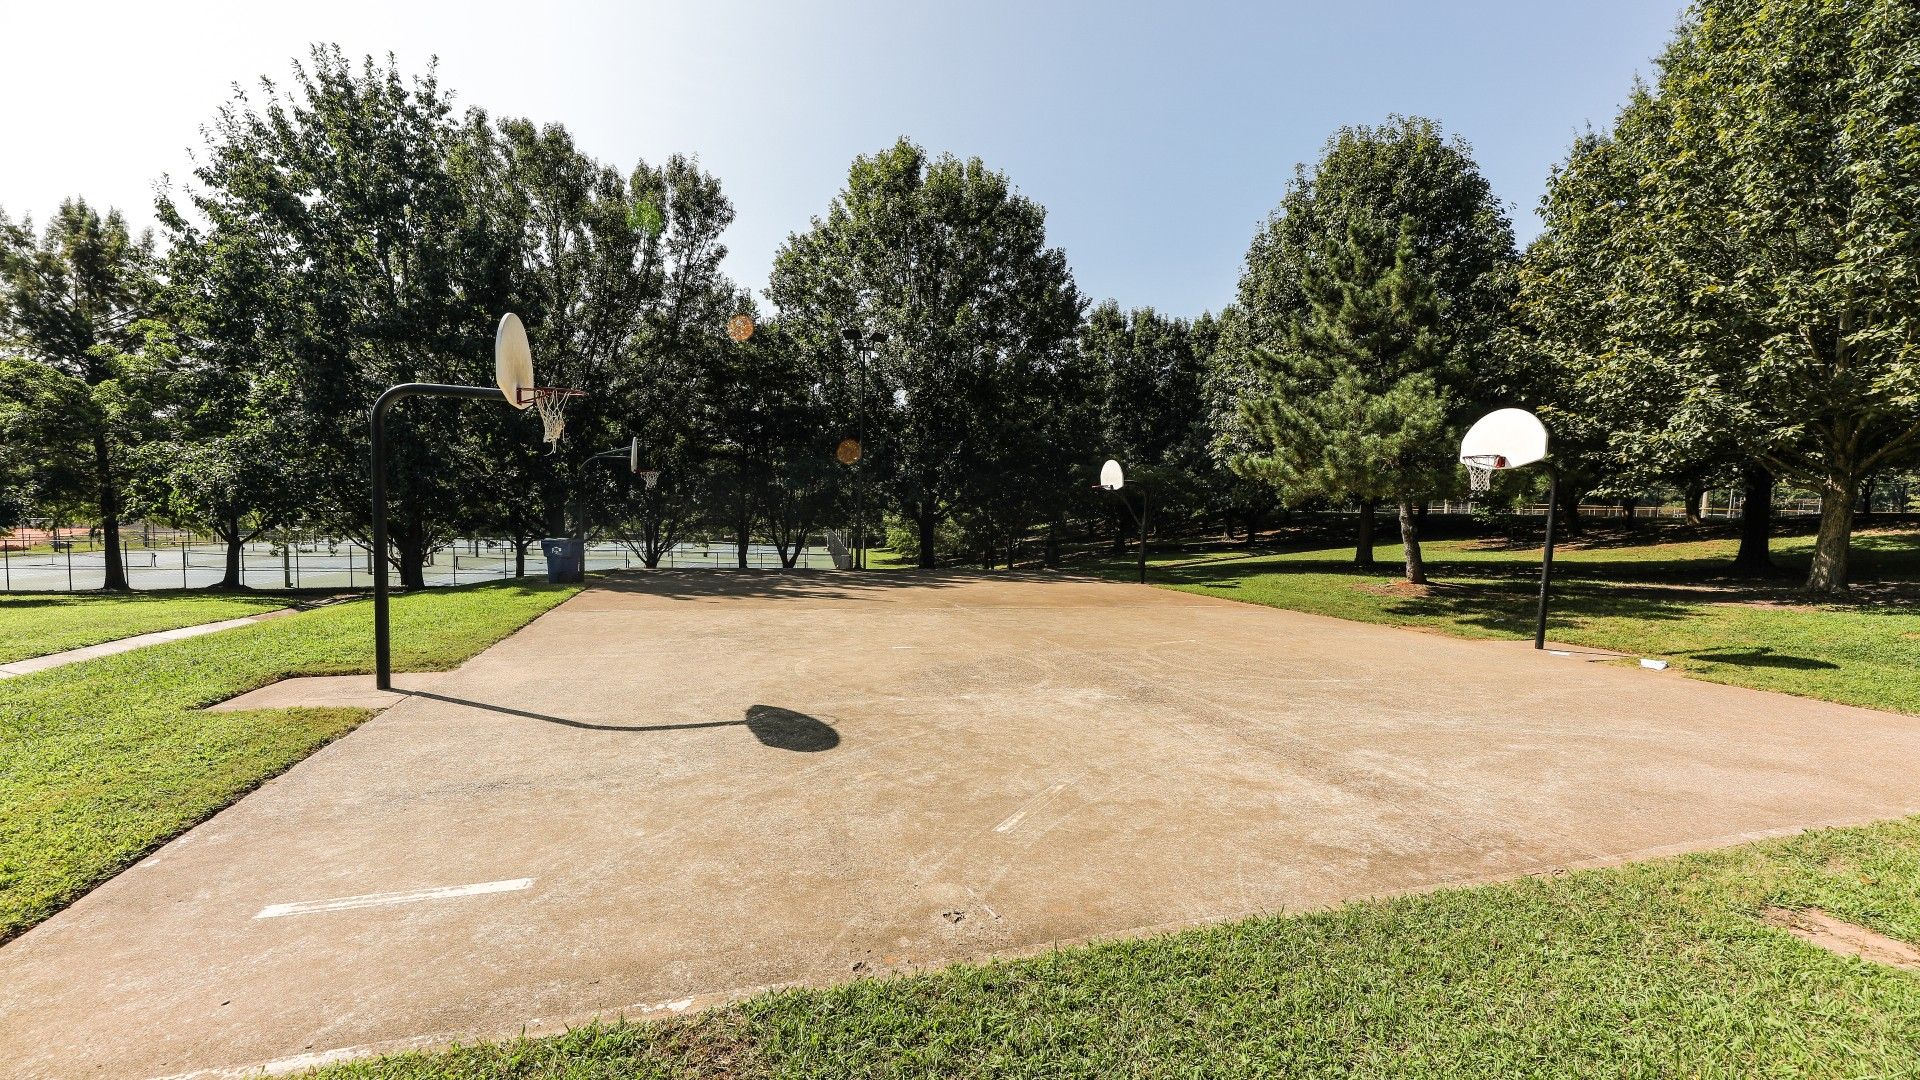 Two outdoor lighted basketball courts with a concrete surface